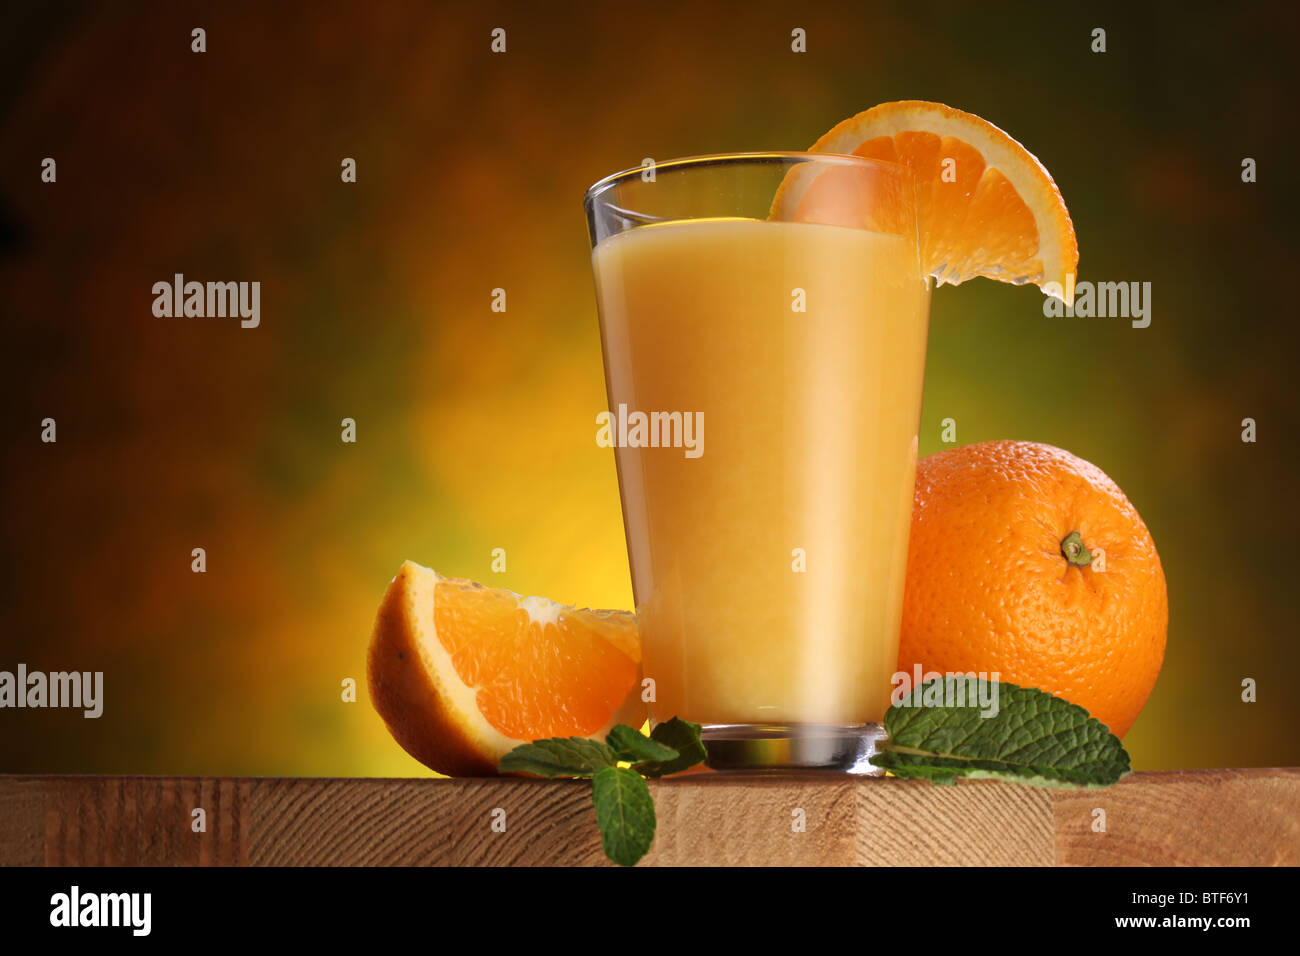 Still life: oranges and glass of juice on a wooden table. - Stock Image